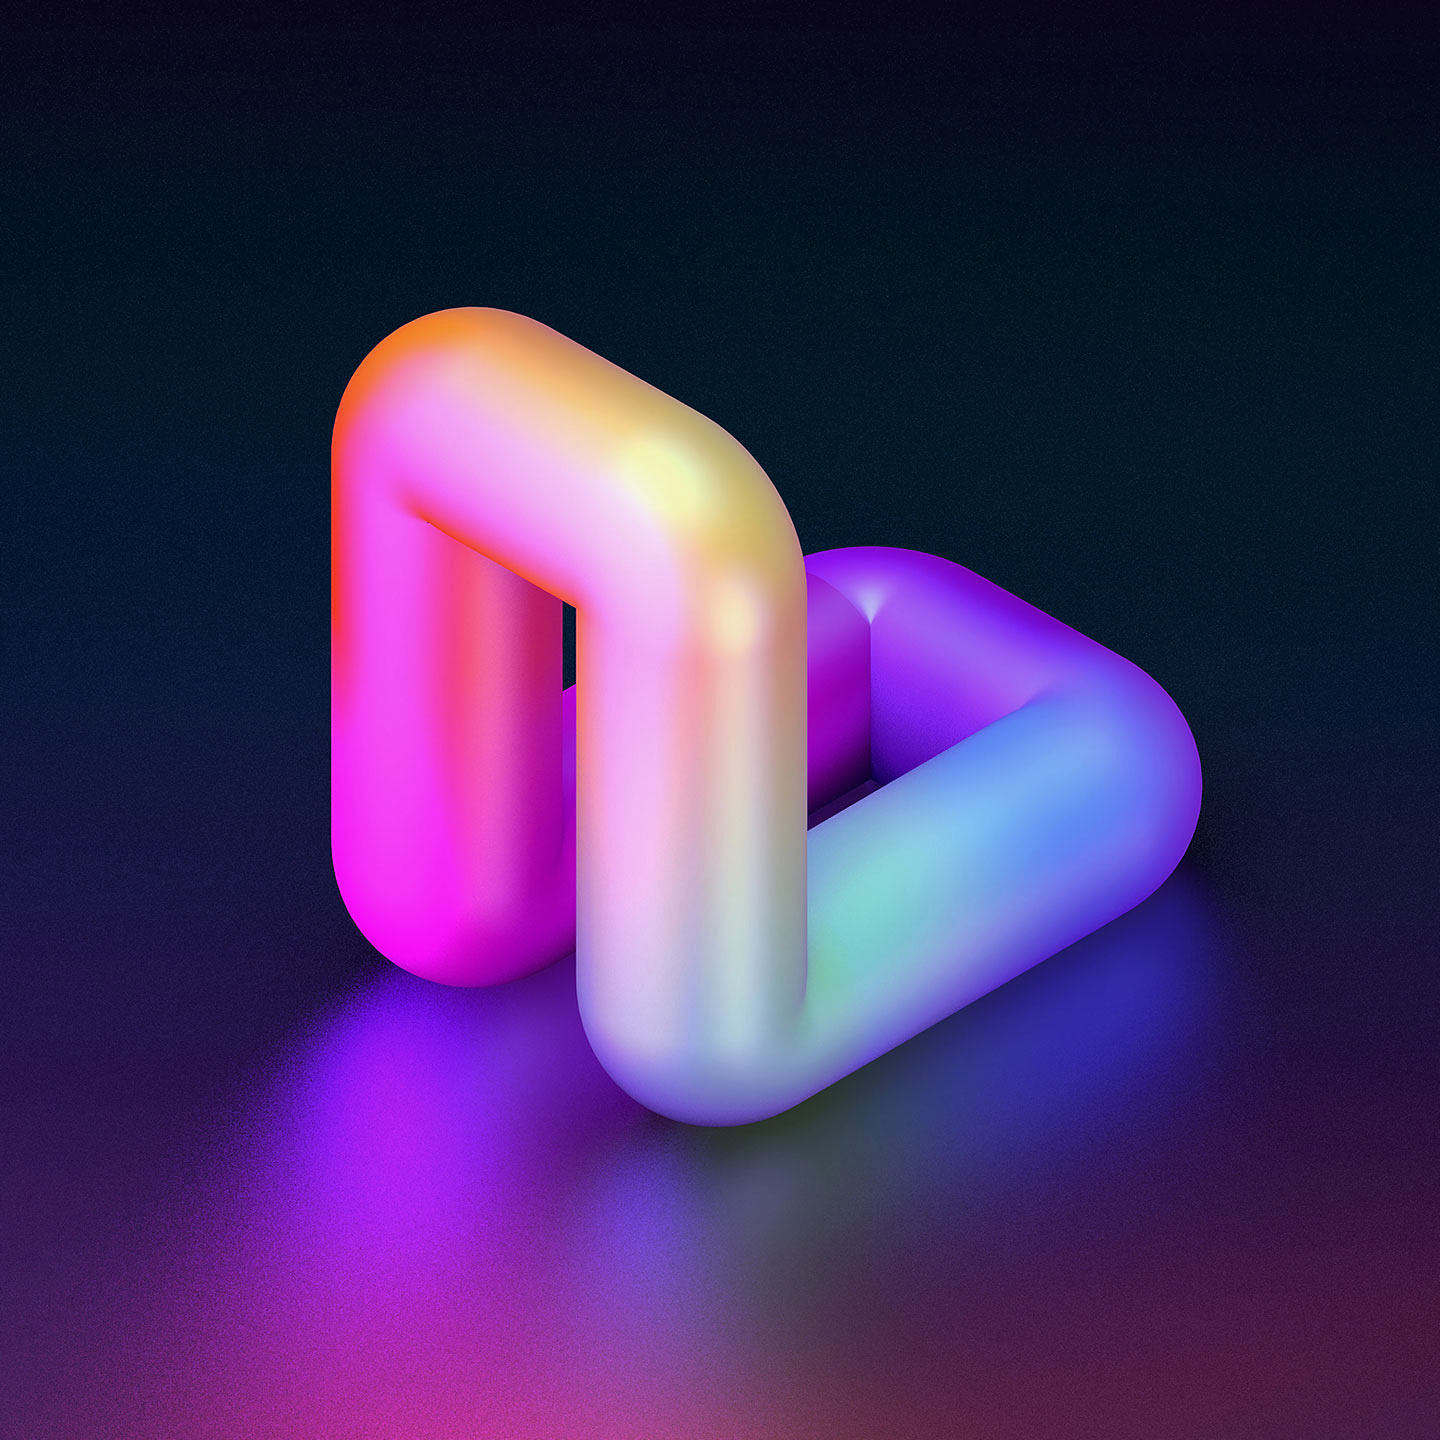 36 Days of Type 2016 - 3D typography letter W visual.